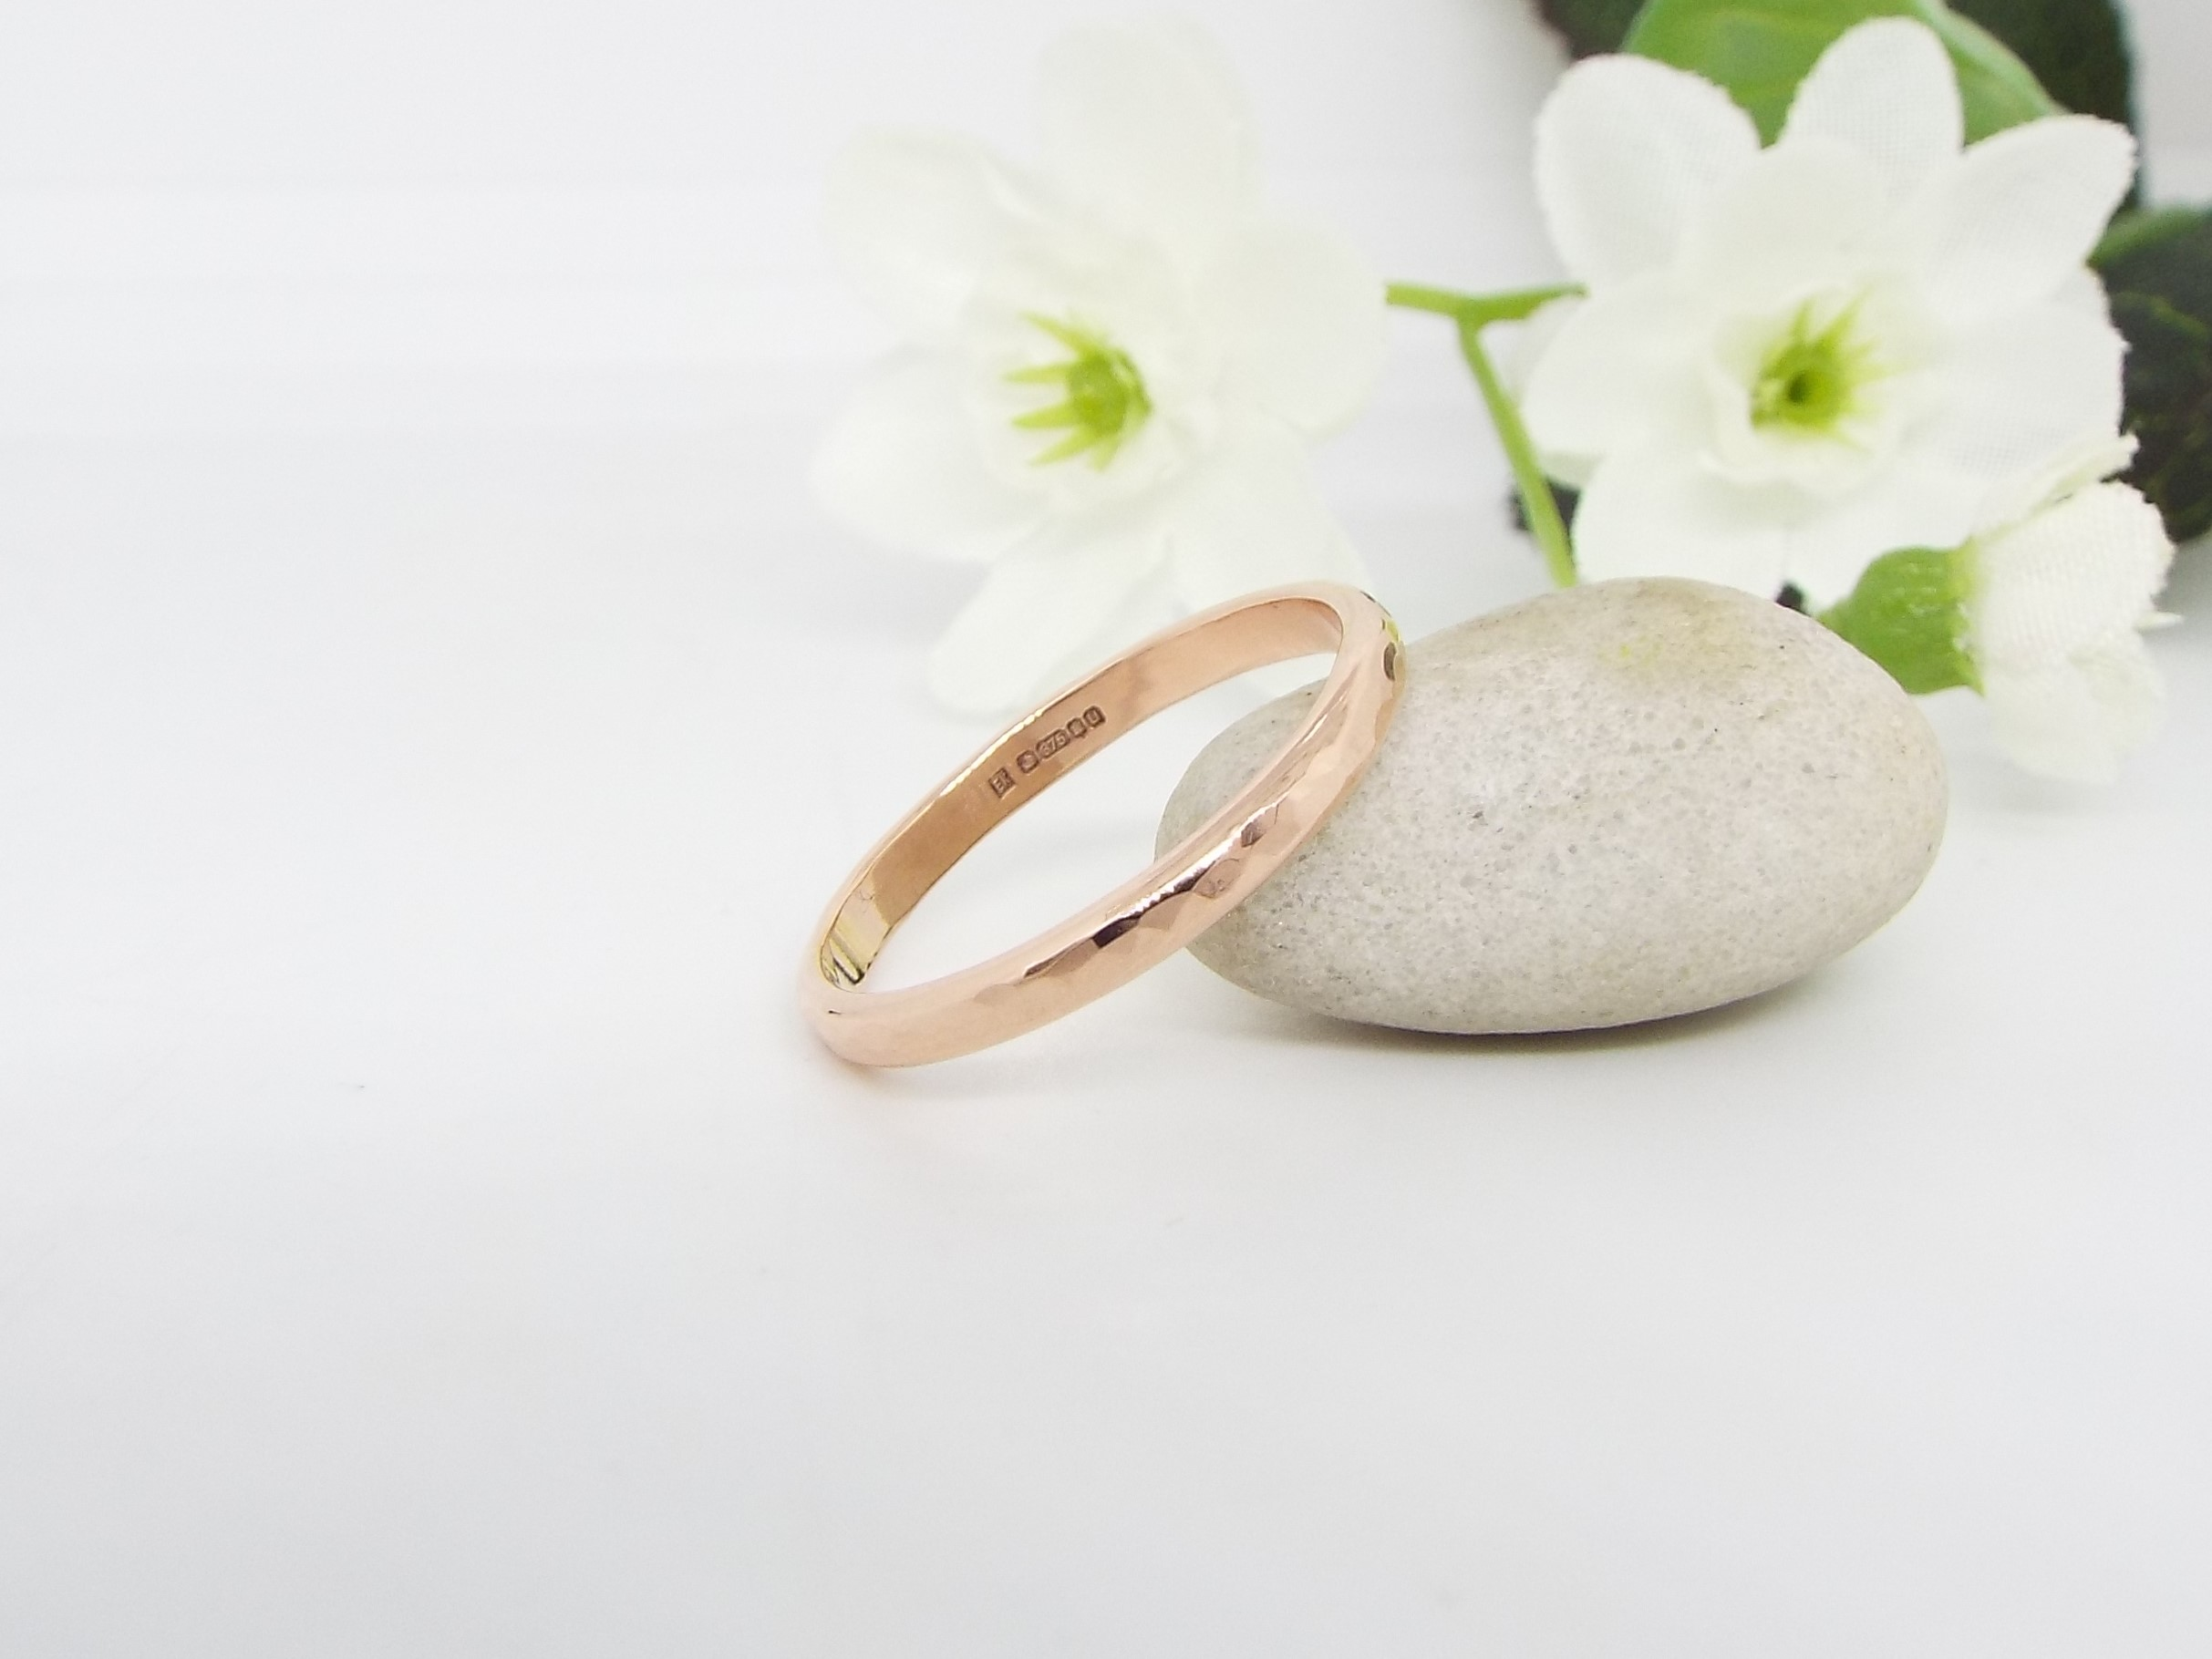 9ct Rose Gold Wedding Ring - Hammered finish - Slim